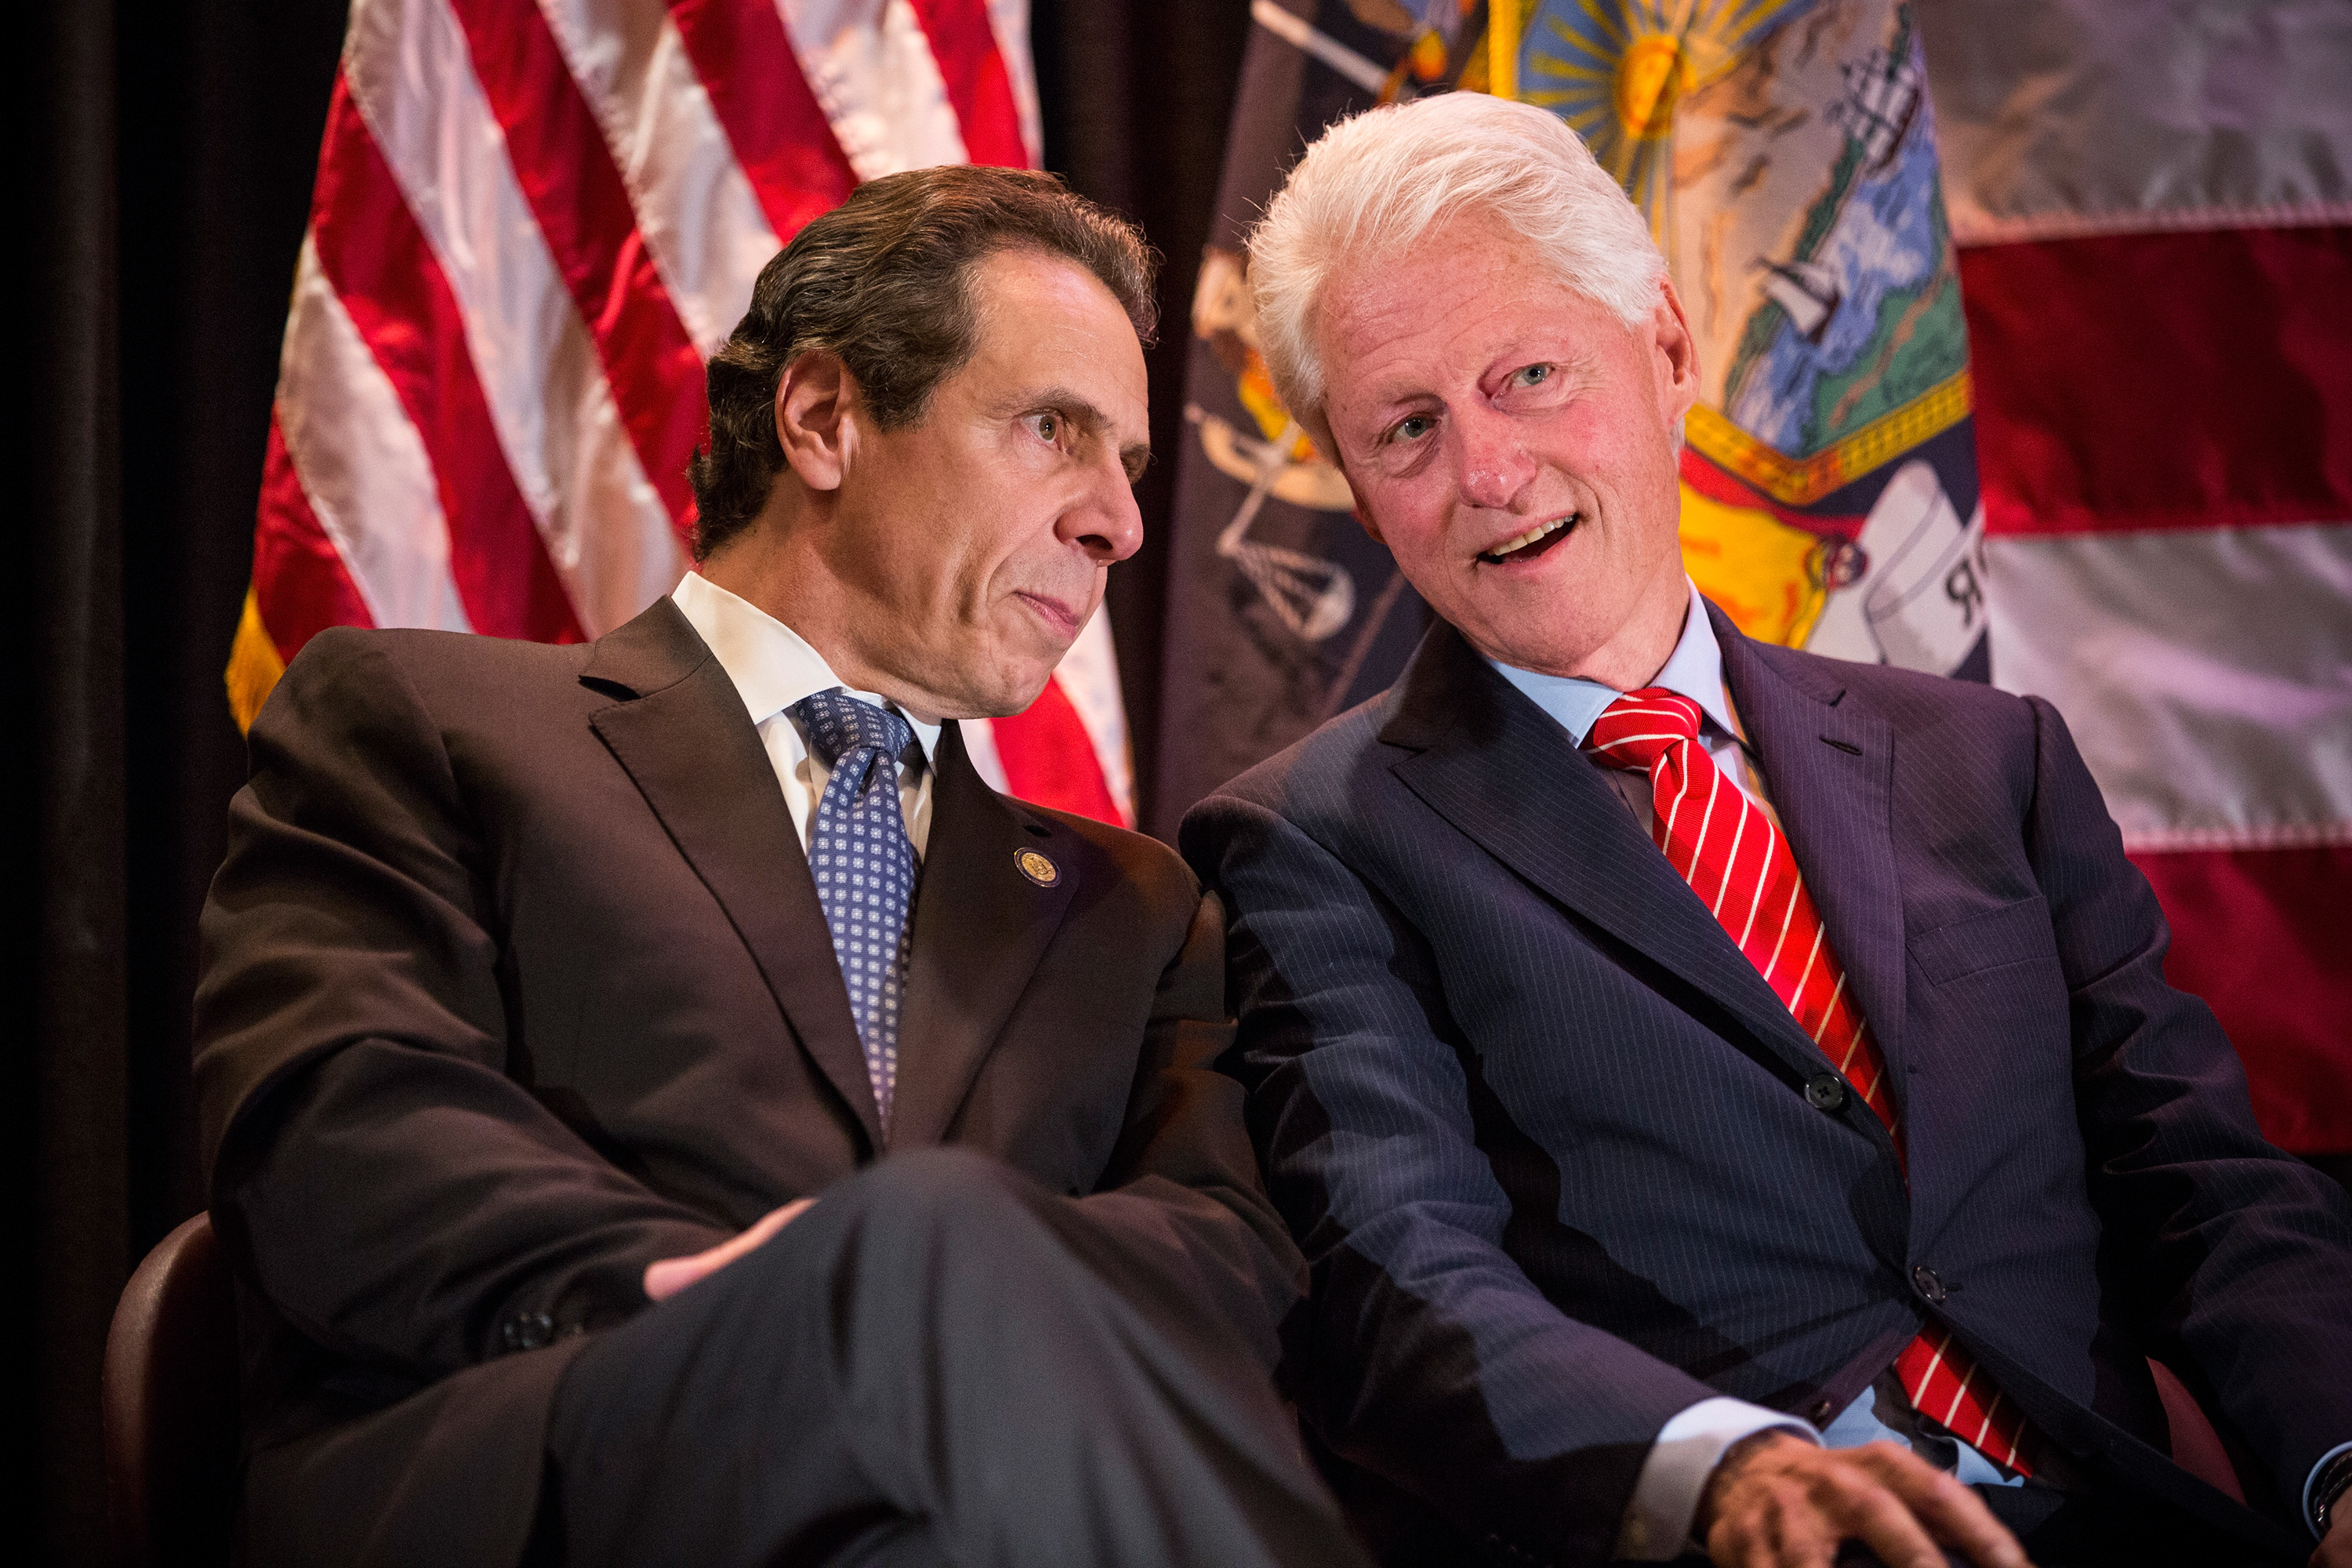 Former President Bill Clinton with Gov. Andrew Cuomo tonight. (Photo: Andrew Burton/Getty Images)